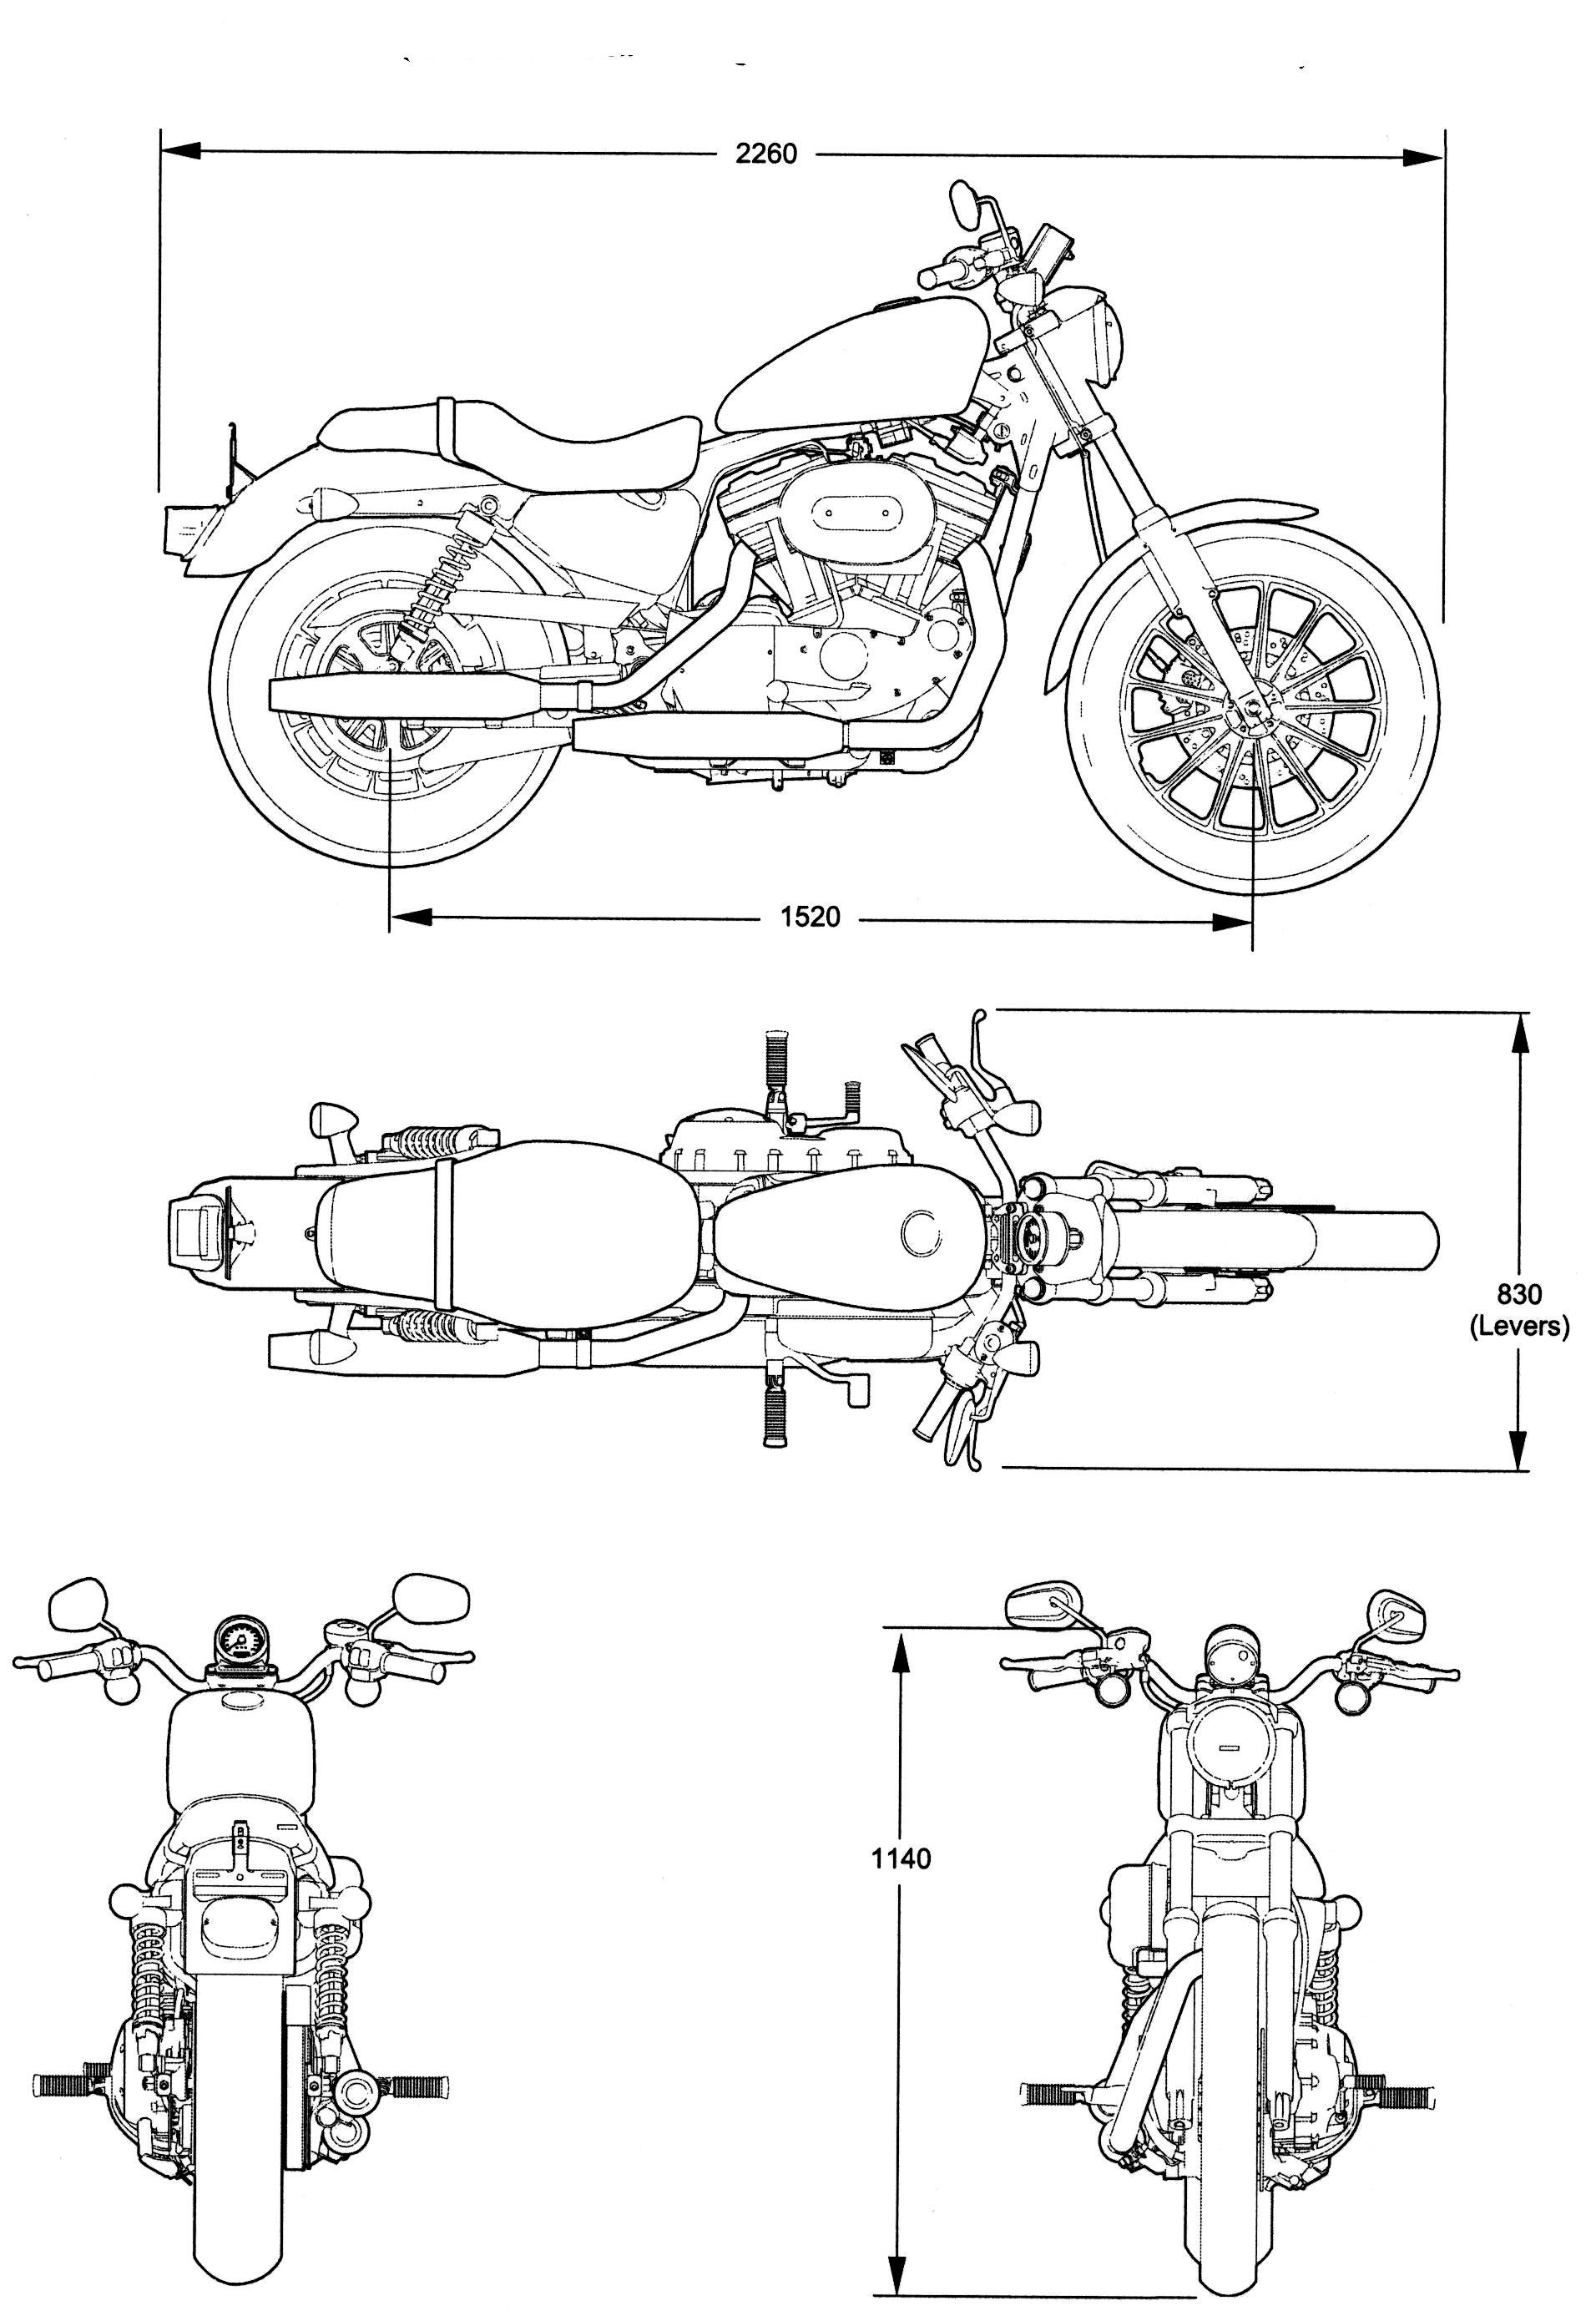 Mag o1 moreover Widiforli20e besides Switch On Ac Dc Cdi moreover 1976 garelli moped parts besides 50cc Carburetor Diagram. on moped engine diagram